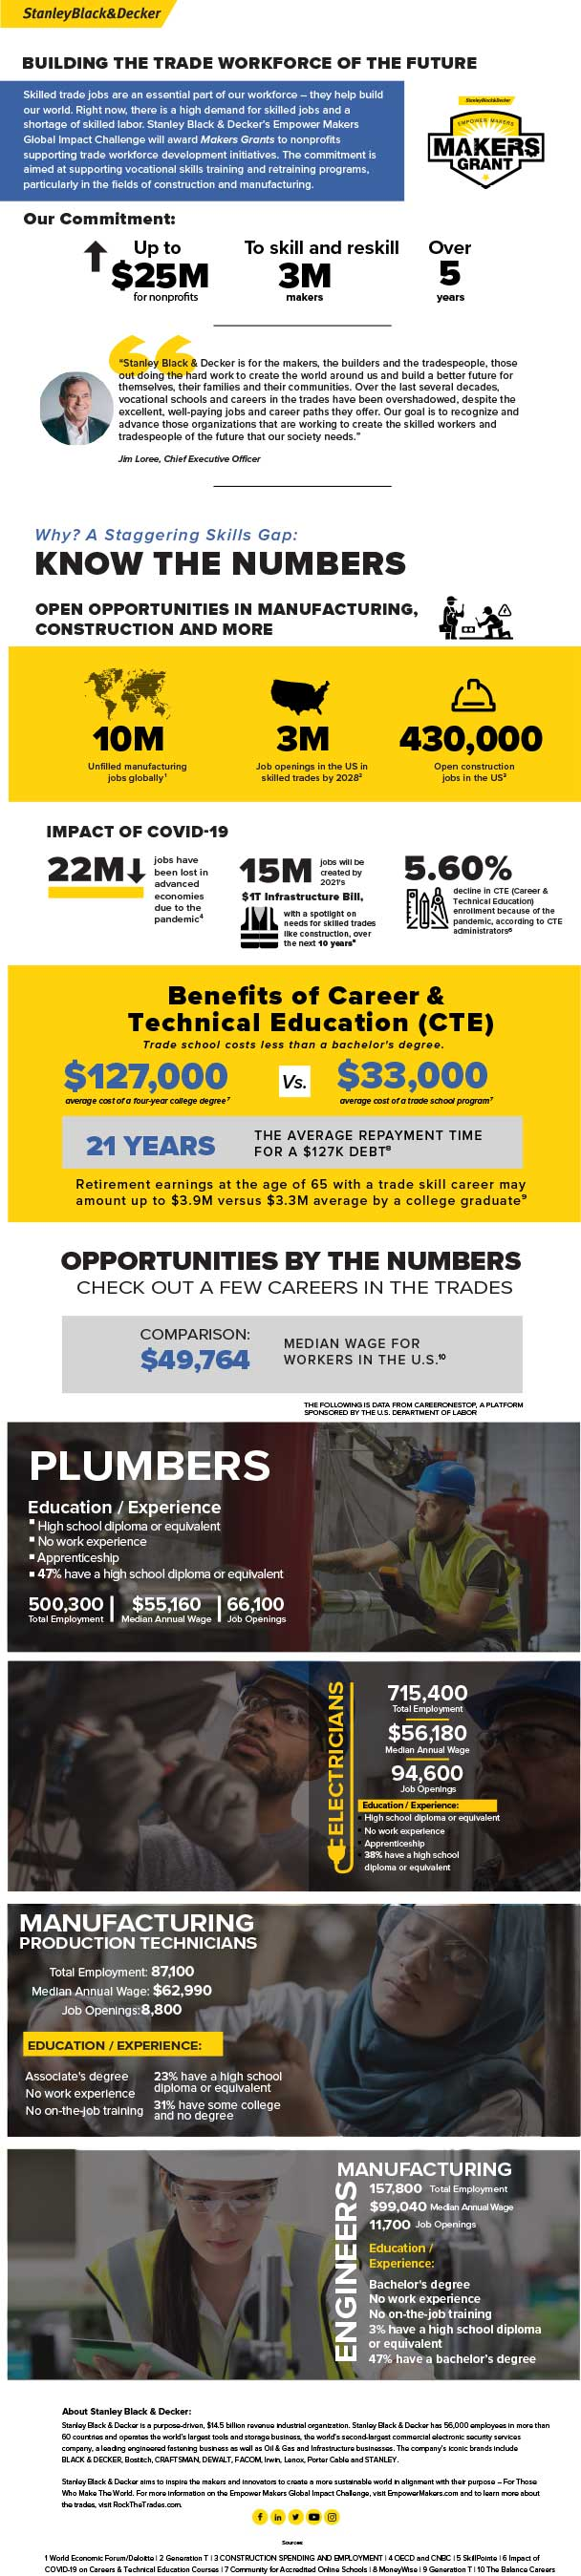 Building the Trade Workforce of the Future: Stanley Black & Decker Launches 5-Year, $25 Million Commitment to Train More Than 3 Million Skilled Trade Workers